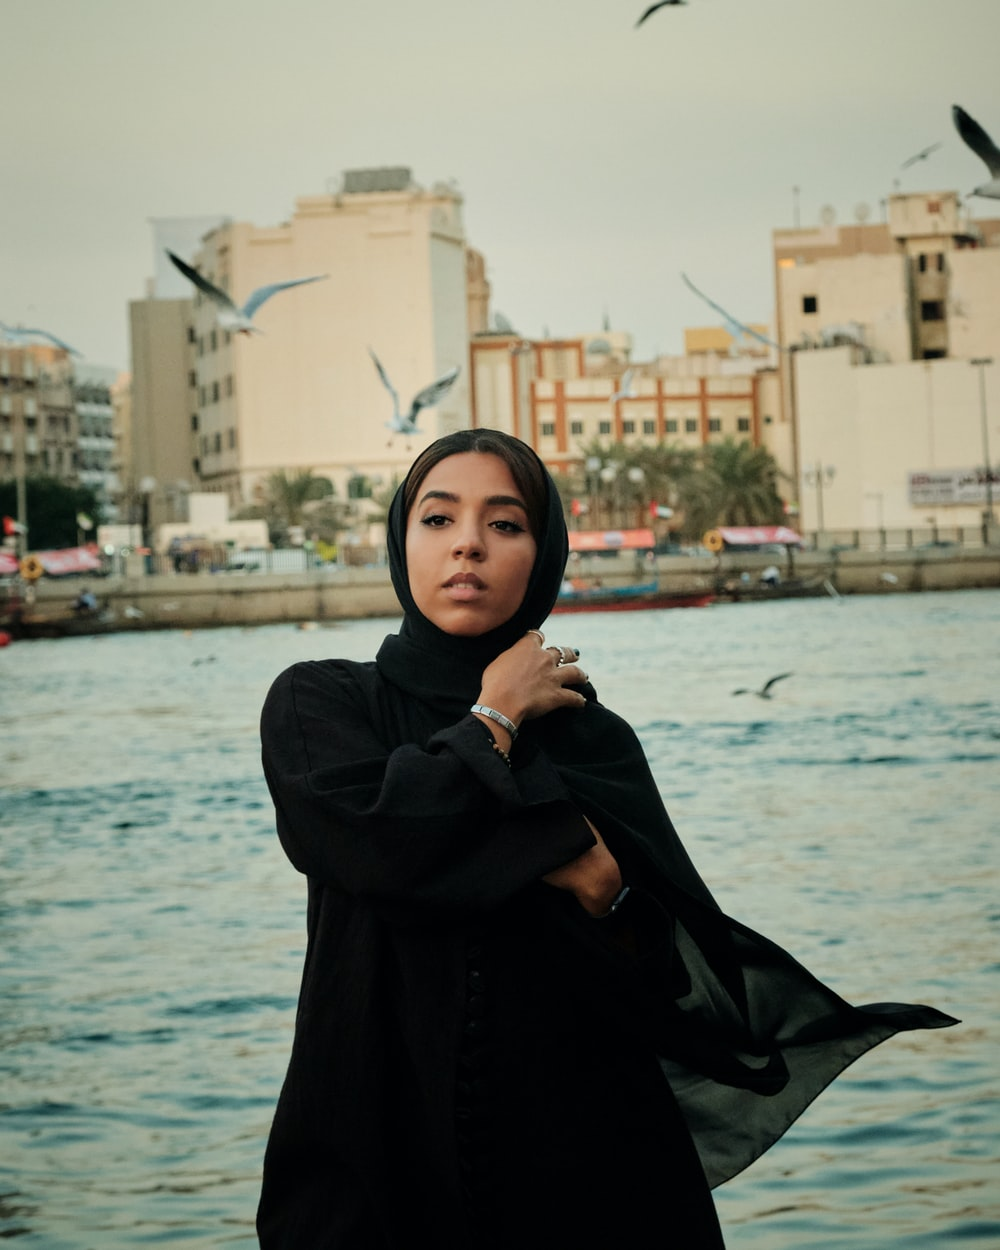 woman in black hijab standing near body of water during daytime